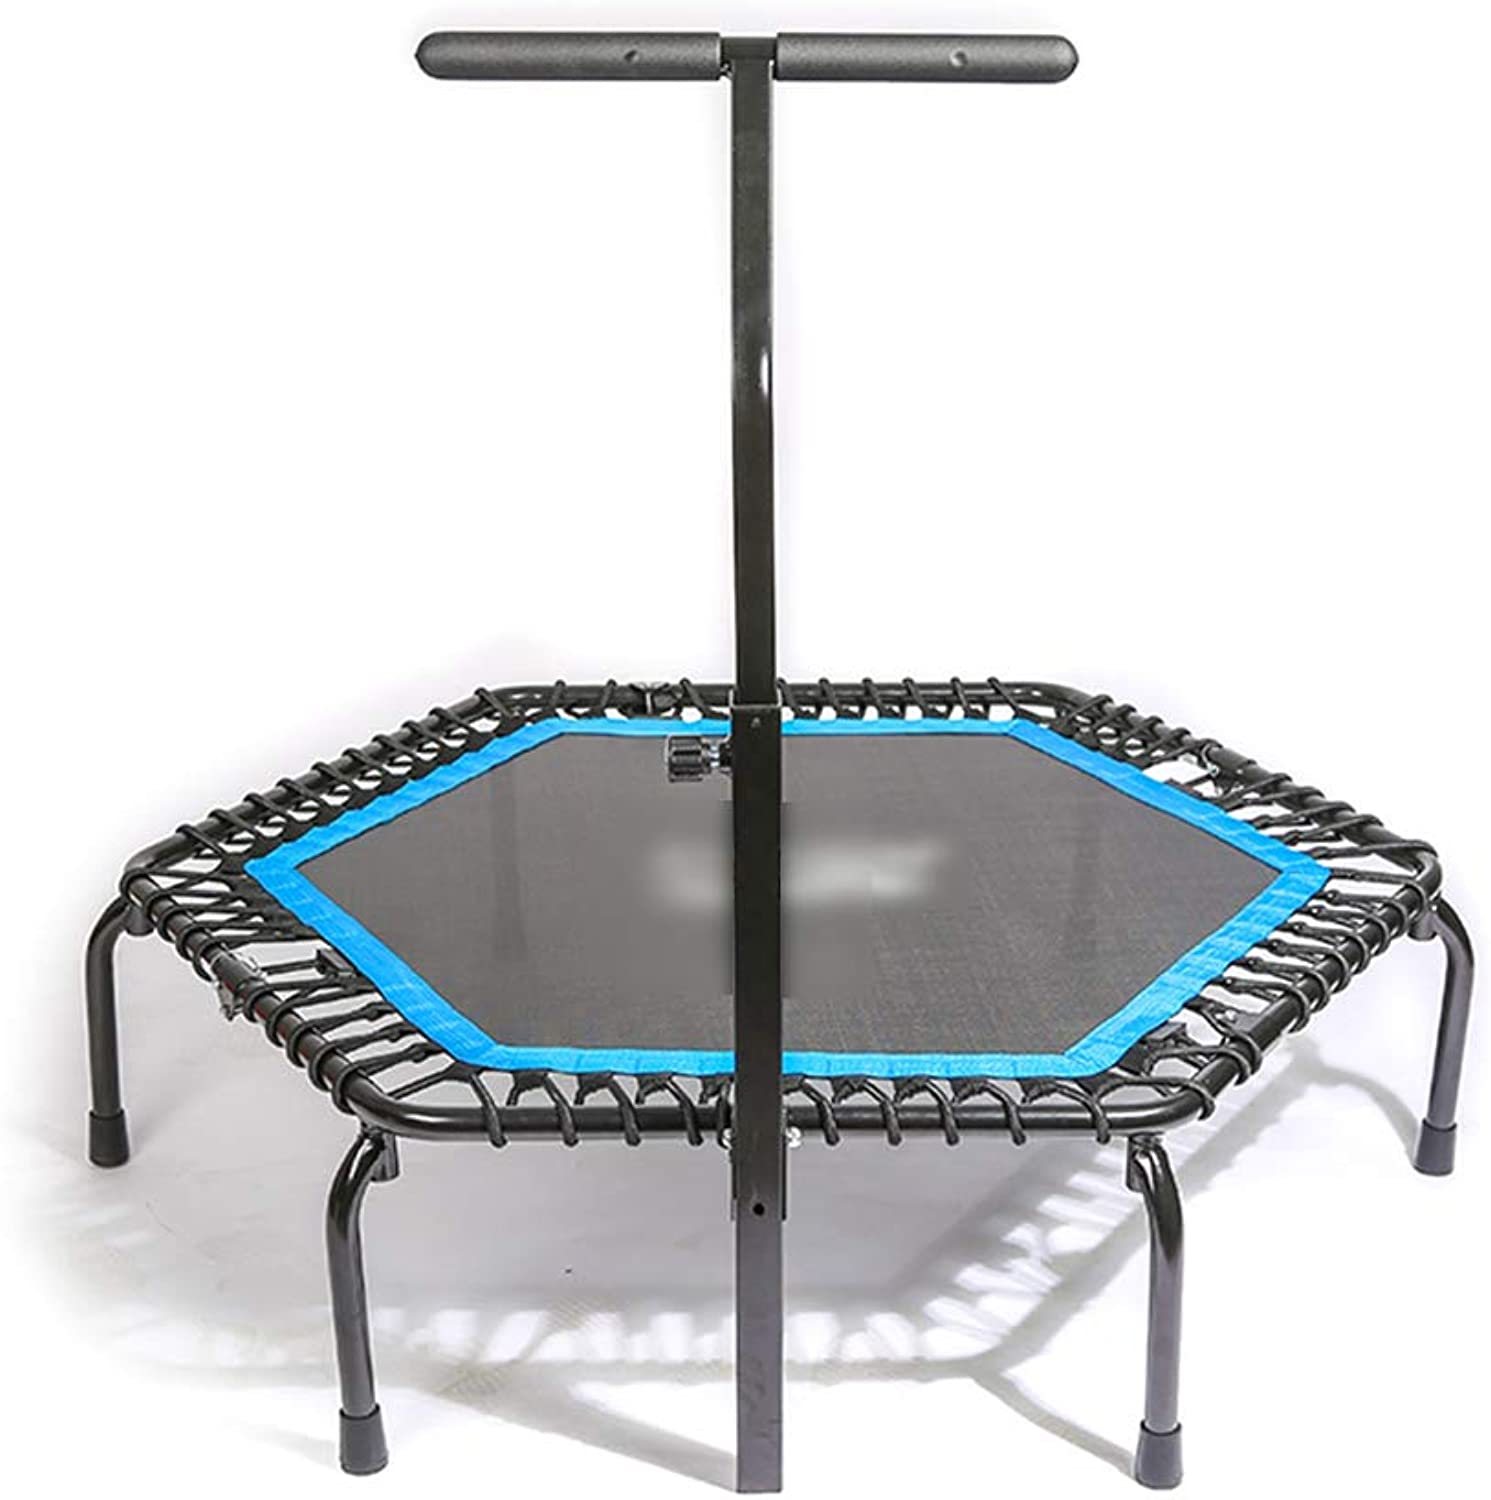 Trampoline with Adjustable Handrail Load 200kg, Folding Trampoline Trainer, 53 inch Portable Trampoline Cardio Workout Fitness